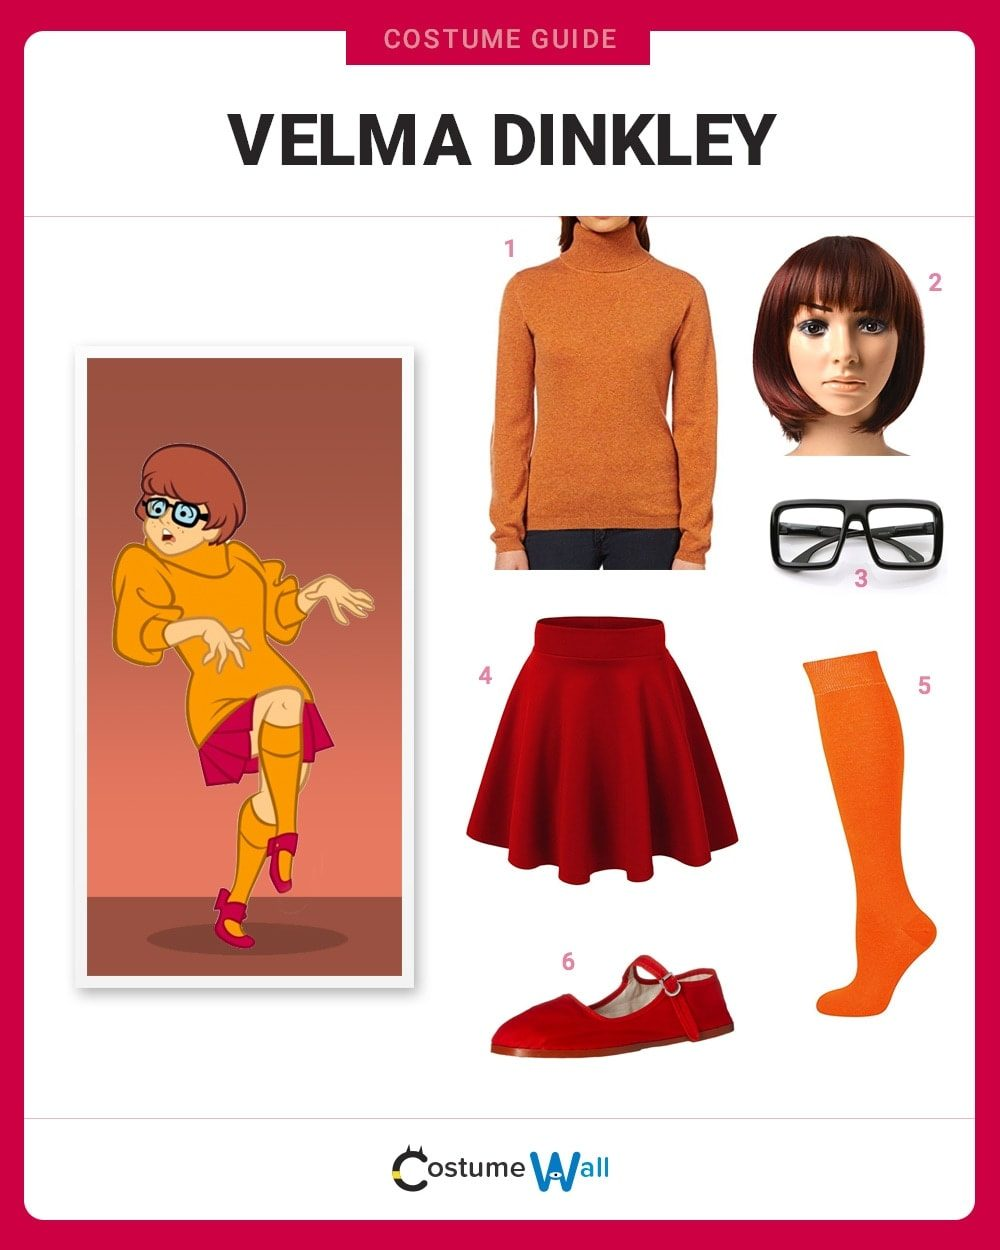 Velma Dinkley Costume Guide